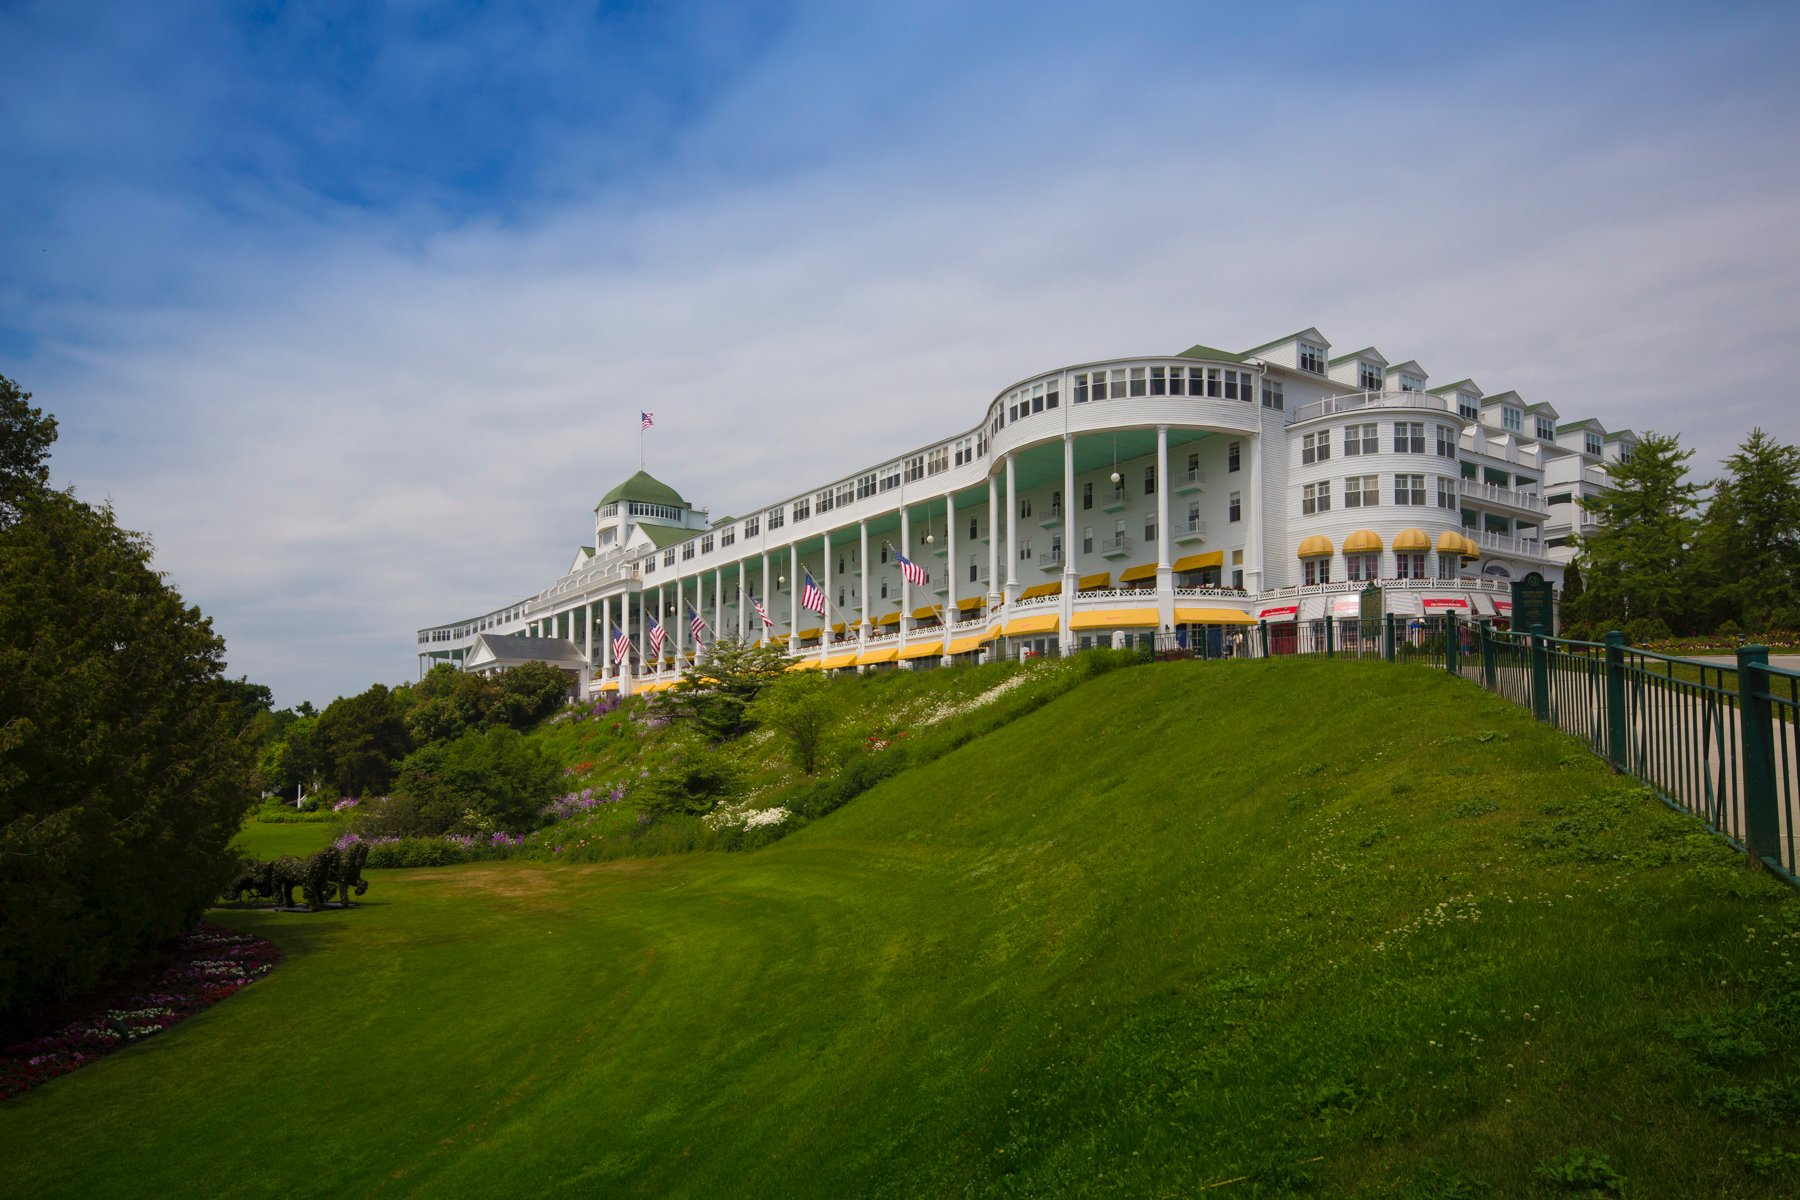 Grand hotel on mackinac island, michigan - all inclusive in usa